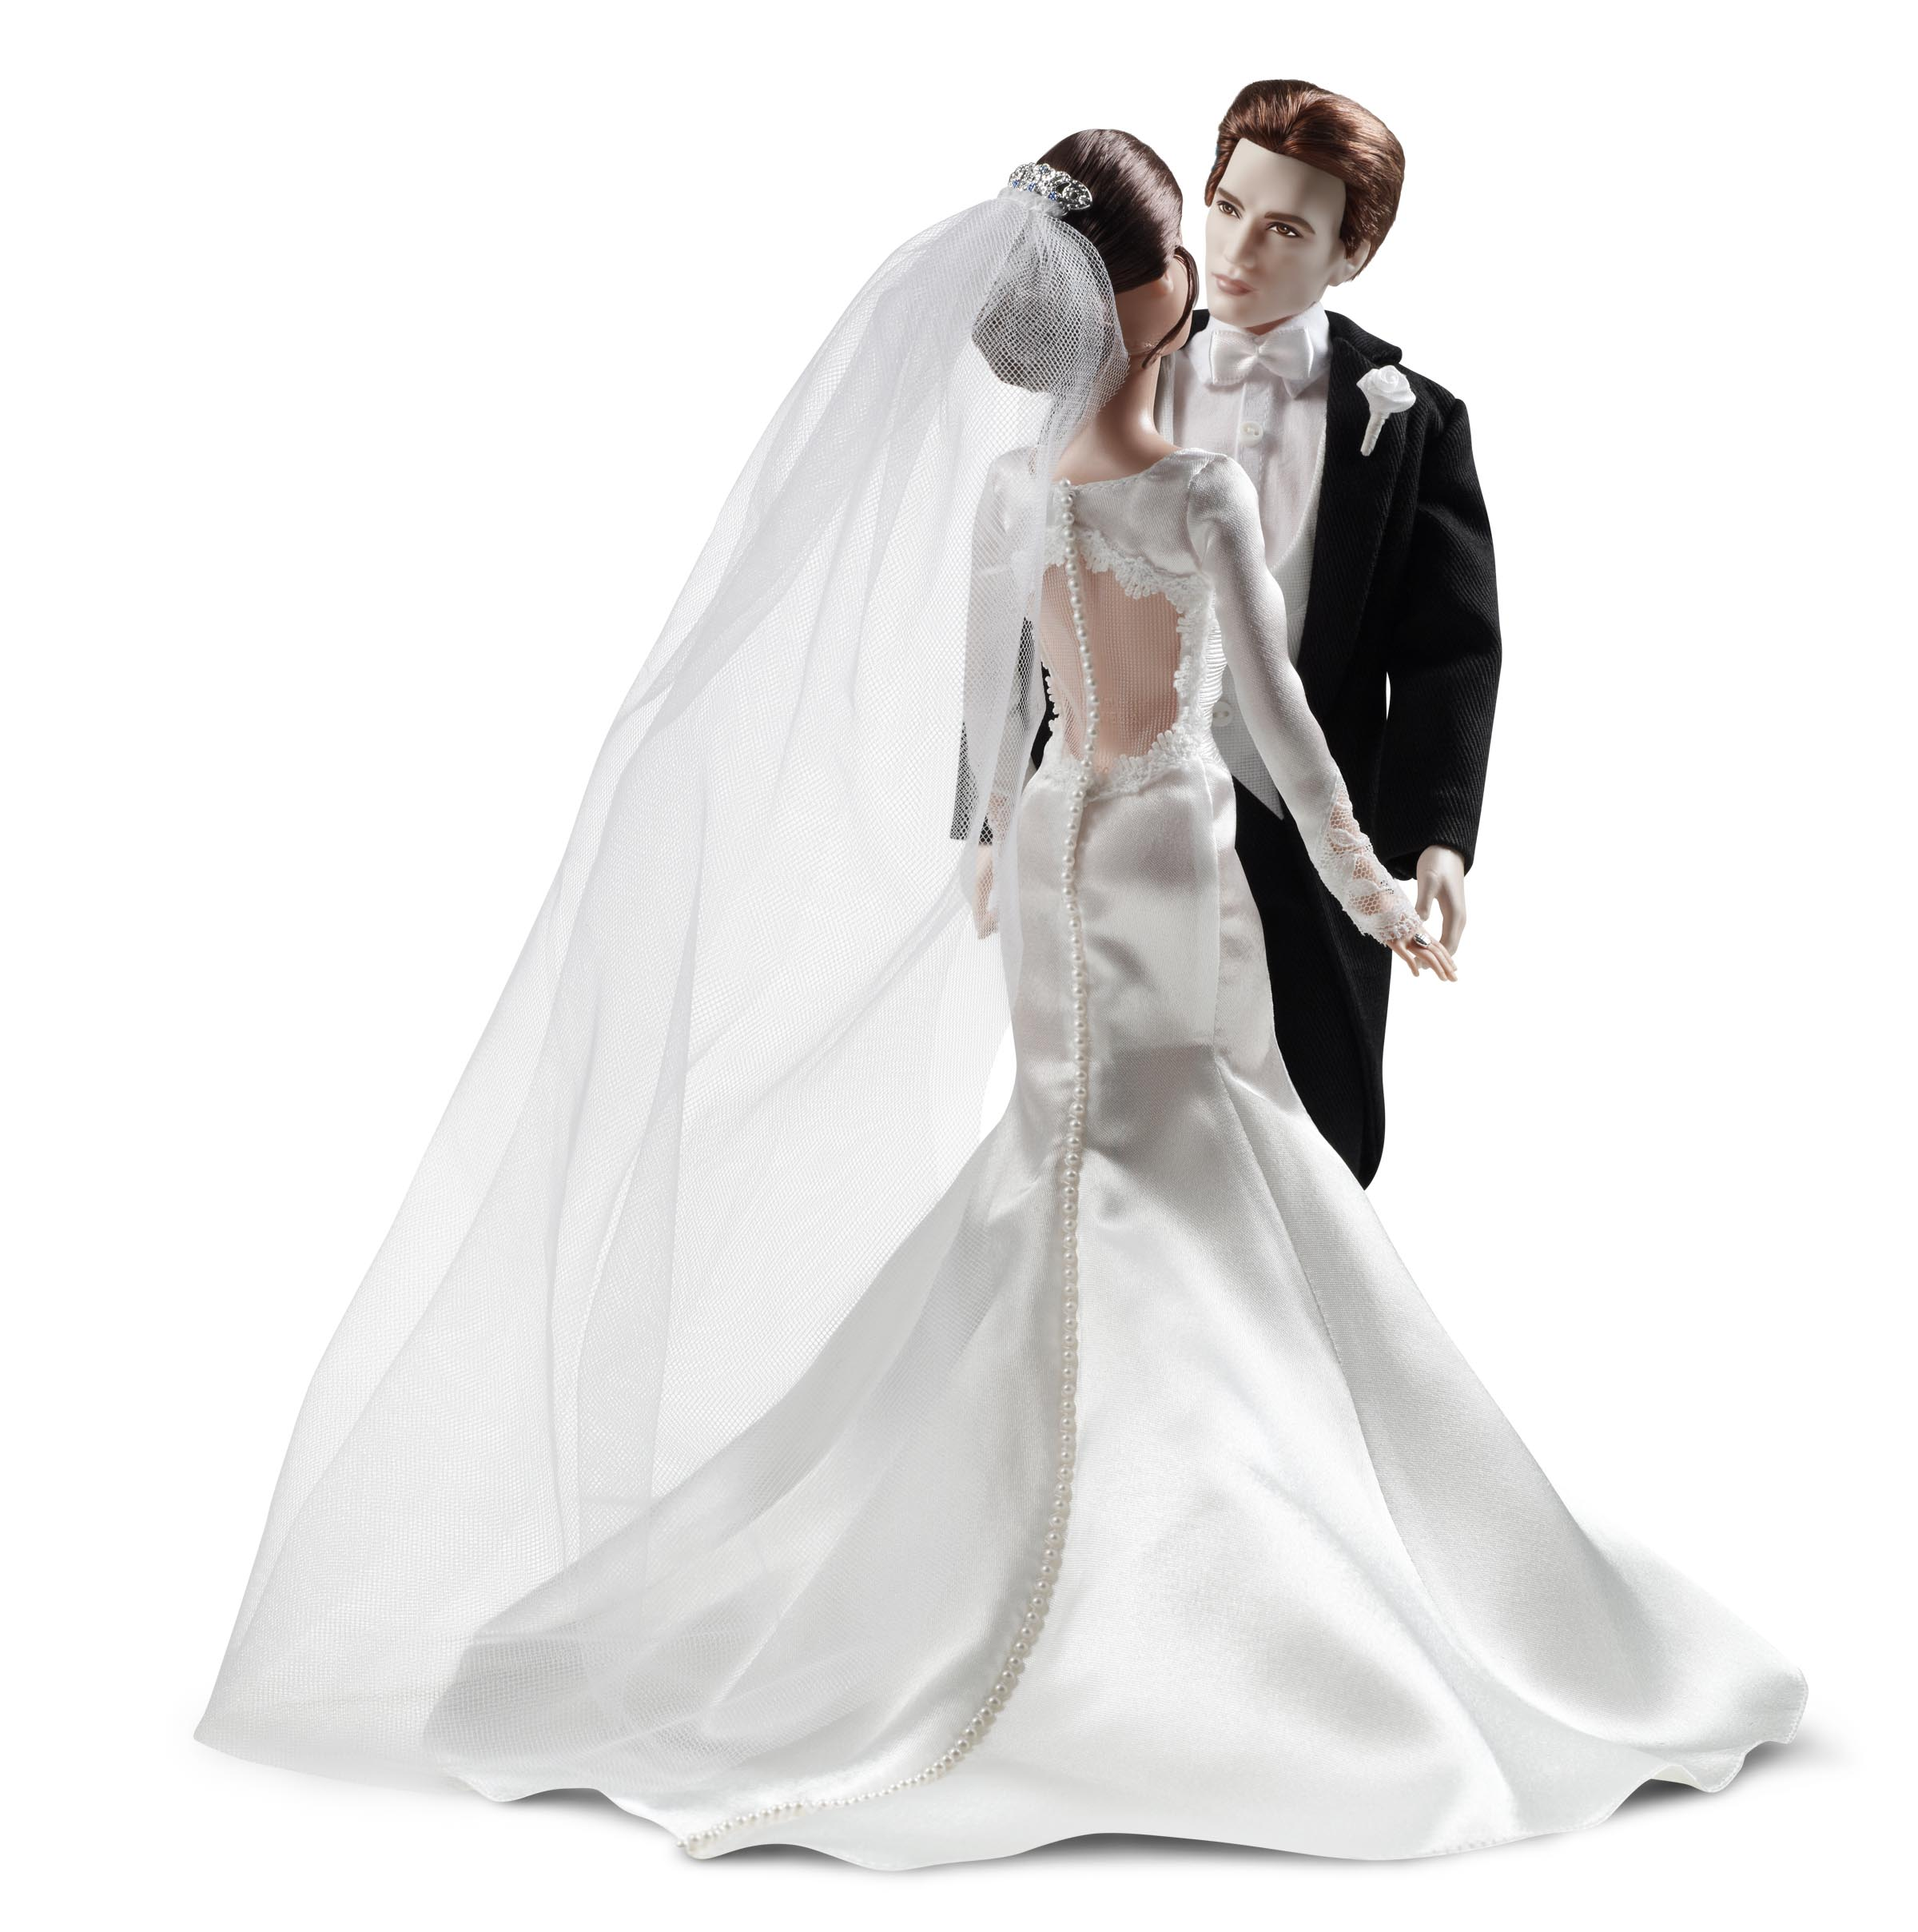 Bella & Edward Wedding Day Barbie